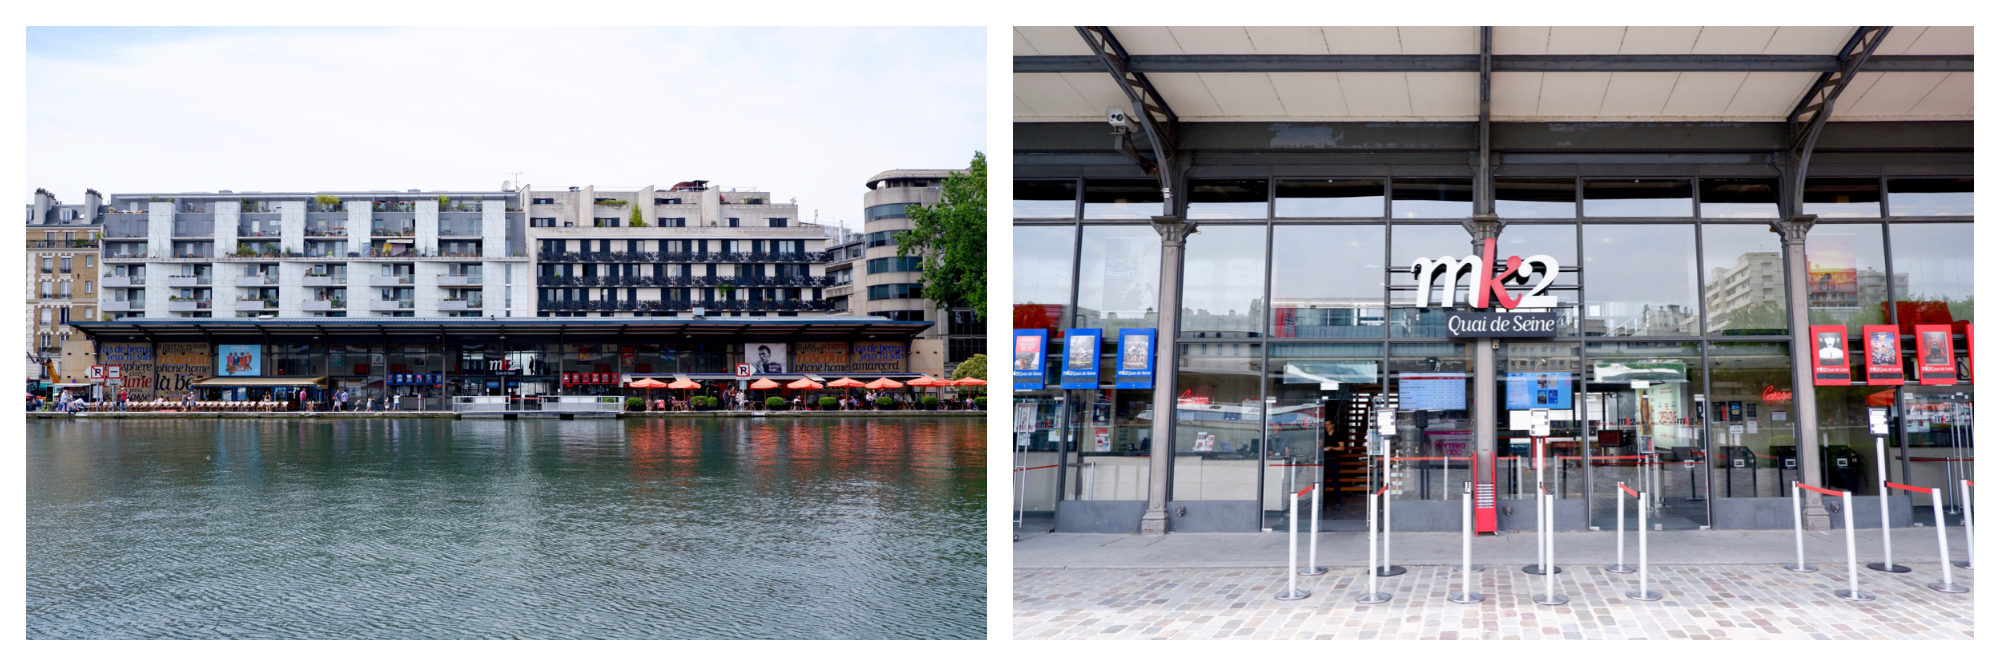 The MK2 cinema right on the canal was what started off the regeneration of the area some years ago.